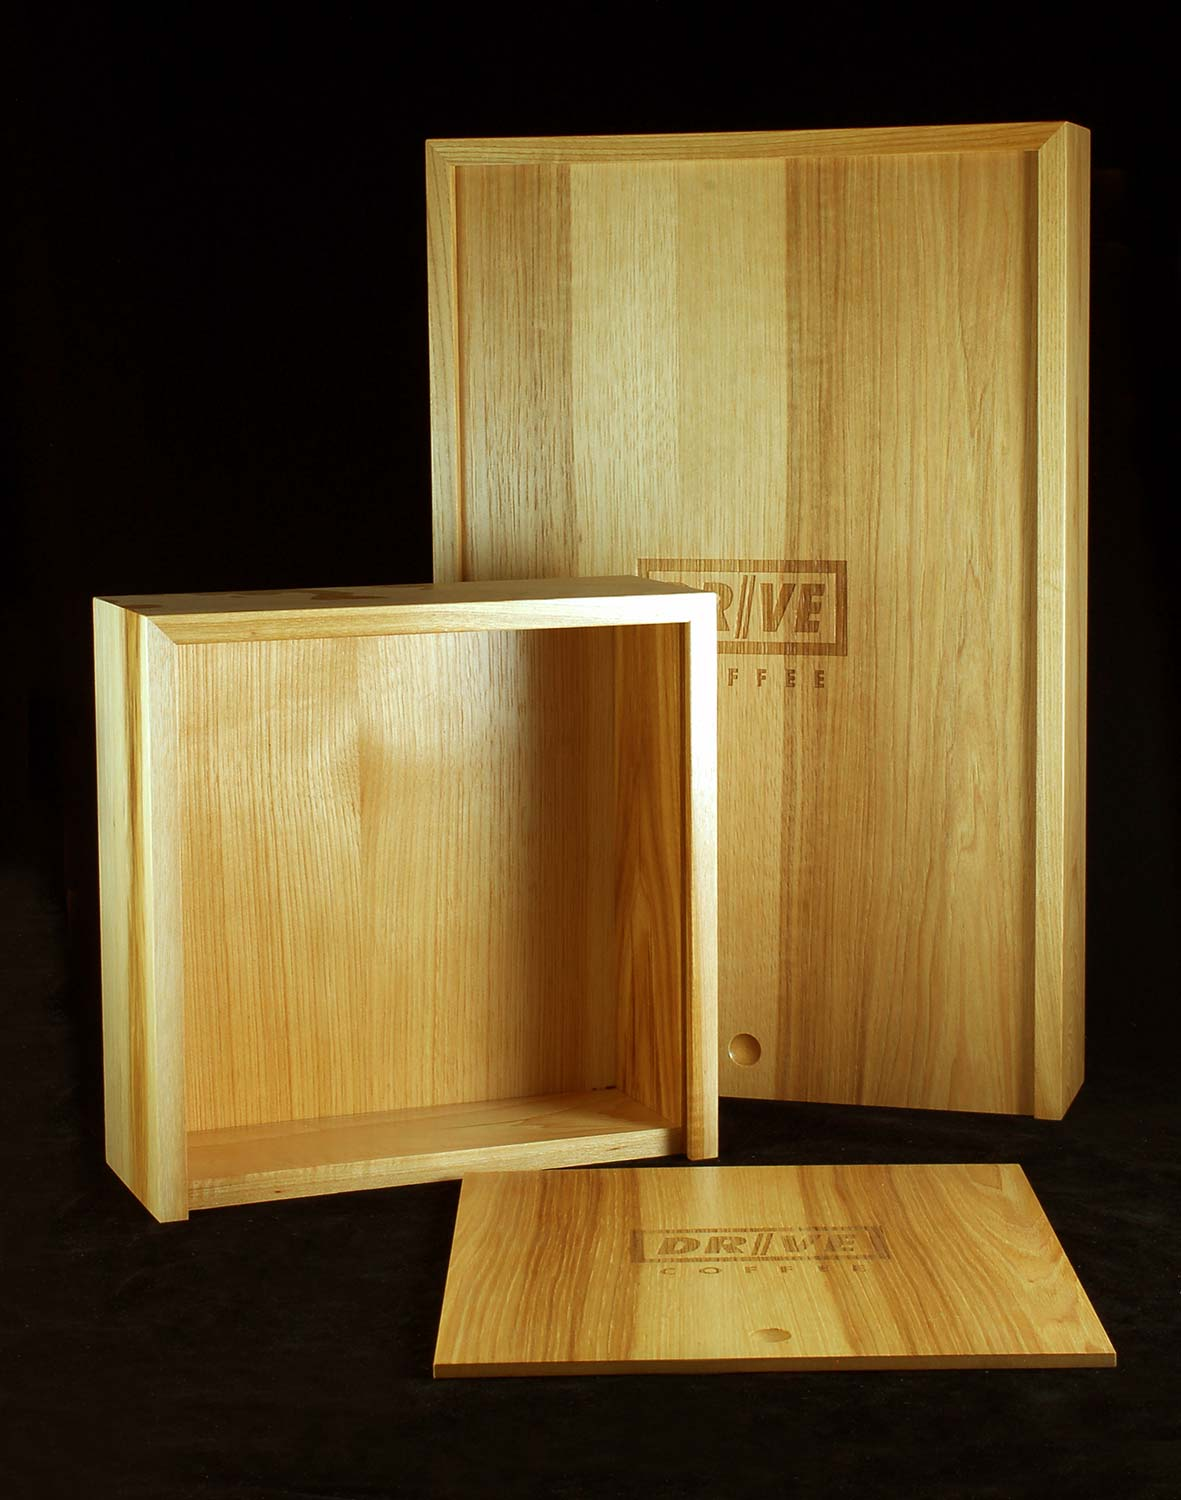 Drive Coffee Box, Large and Small